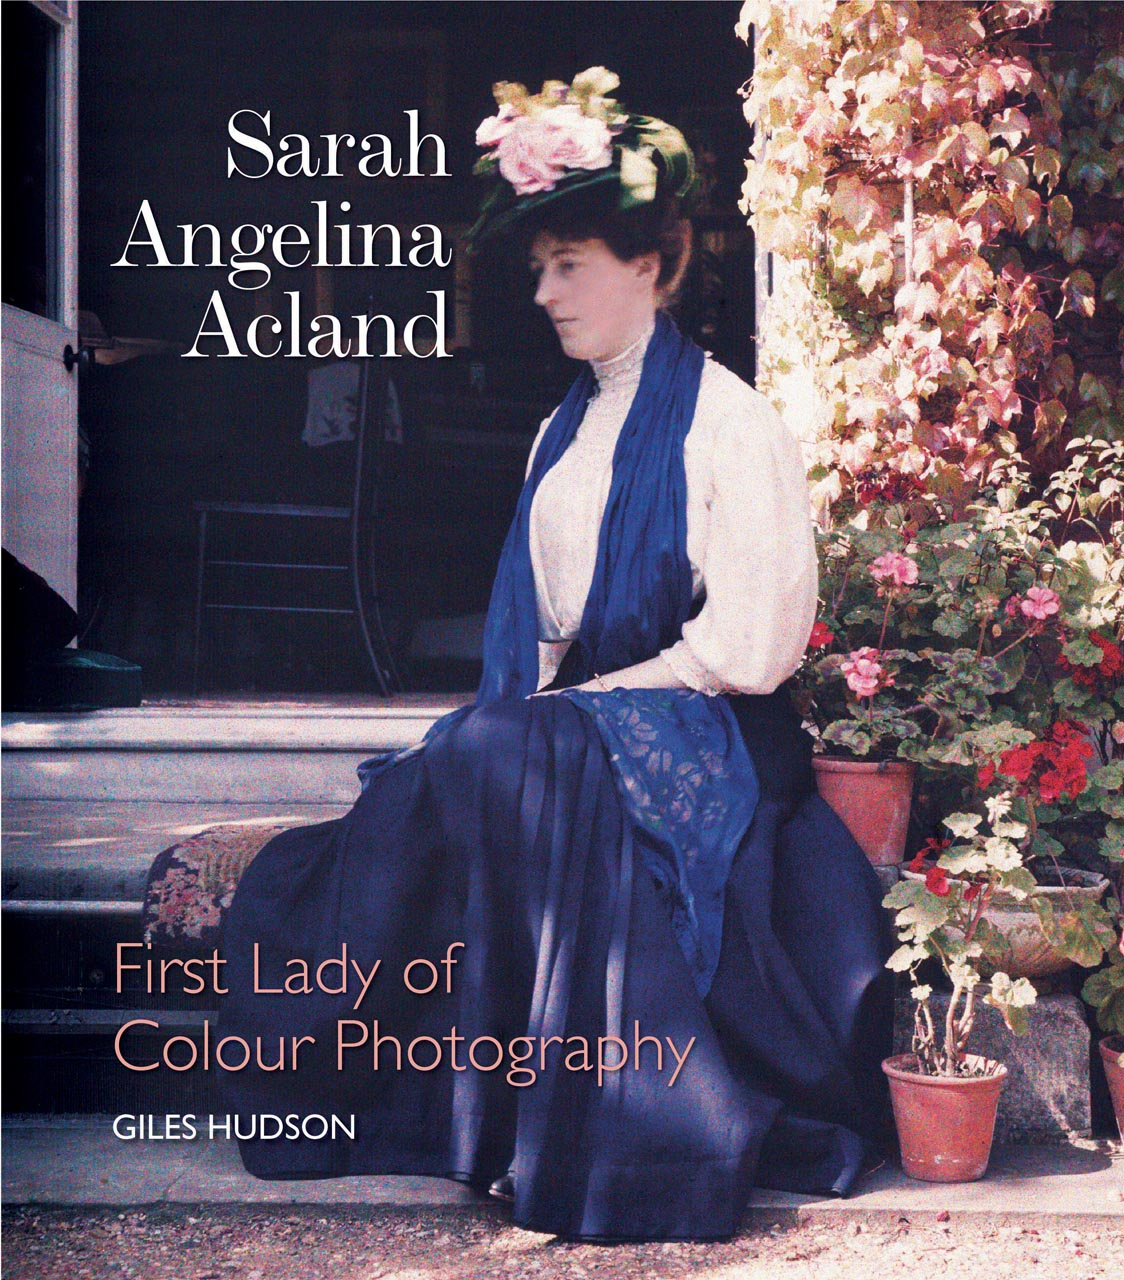 Sarah Angelina Acland: First Lady of Colour Photography